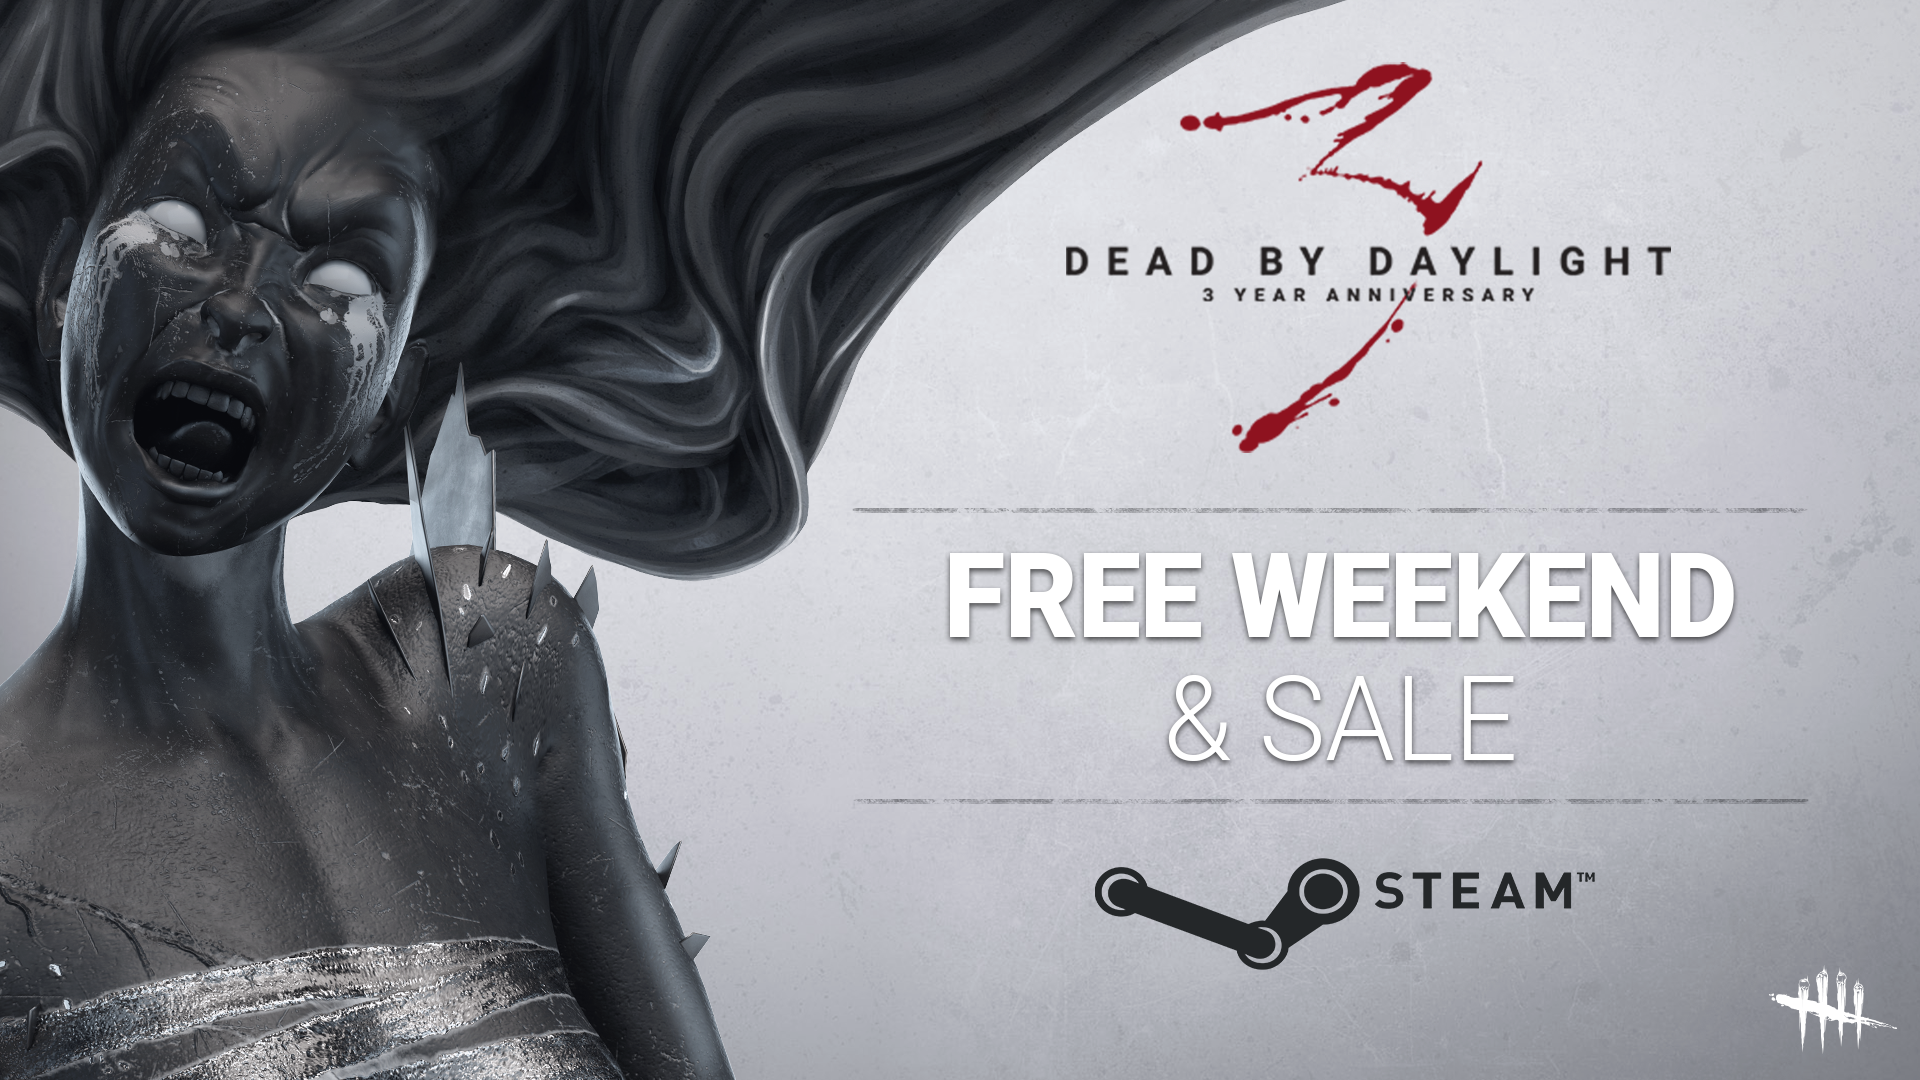 Dead by Daylight :: Dead by Daylight is playable for free until.